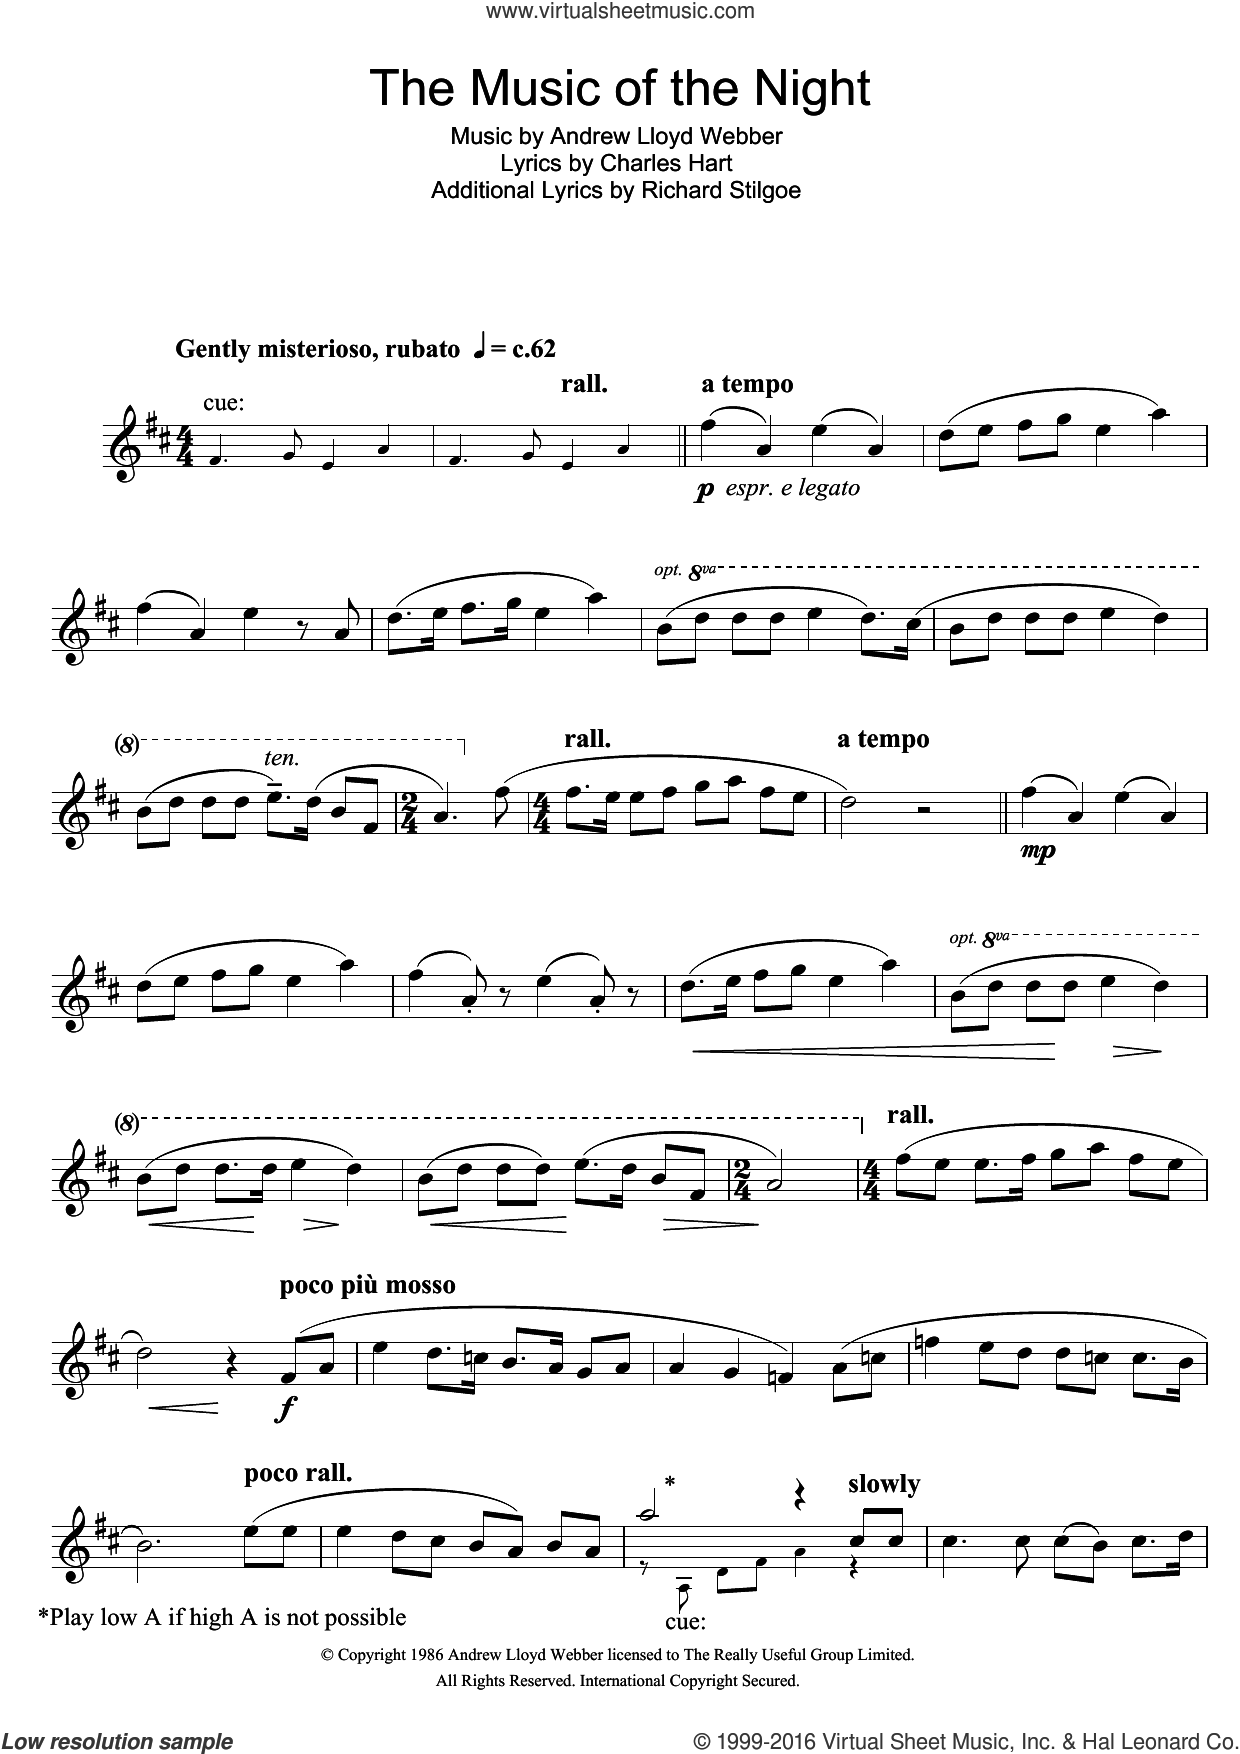 The Music Of The Night (from The Phantom Of The Opera) sheet music for tenor saxophone solo by Andrew Lloyd Webber, Charles Hart and Richard Stilgoe, intermediate skill level